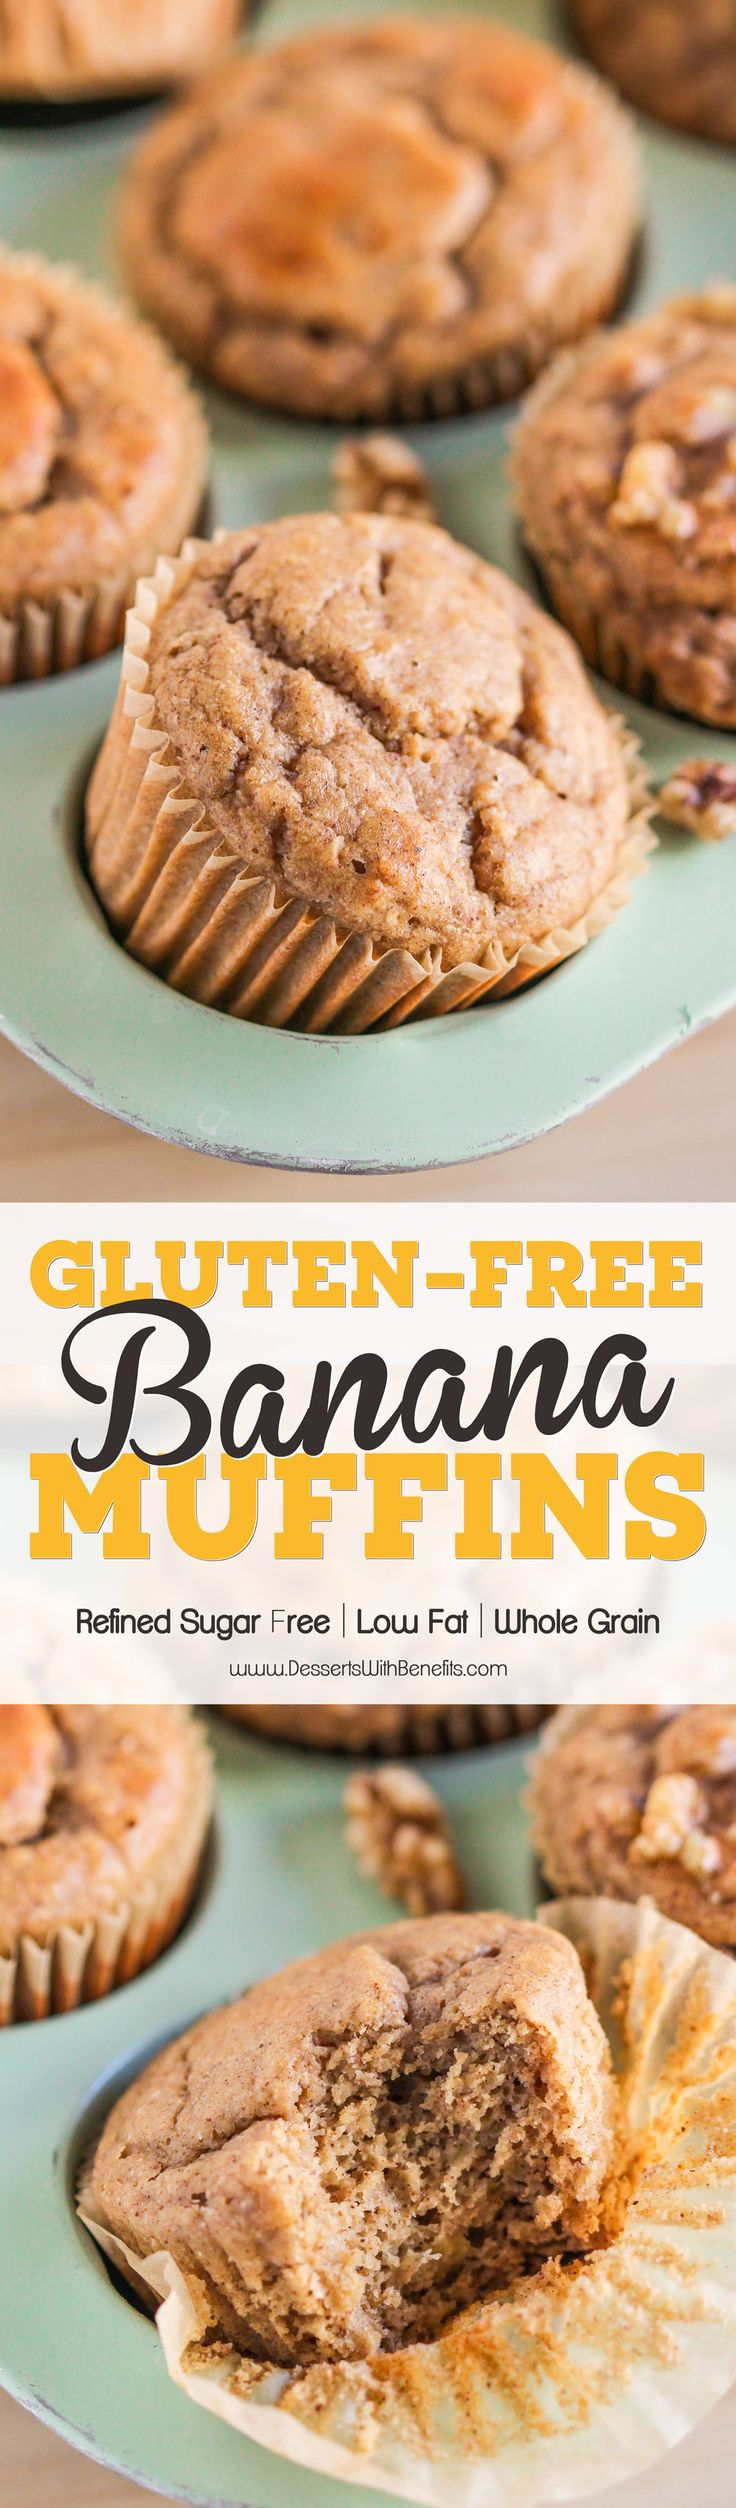 These are the ULTIMATE Healthy Banana Muffins! So fluffy, moist, sweet, and packed with banana bread flavor, you'd never guess that these have NO butter and NO sugar added. These Banana Muffins are low calorie, low fat, refined sugar free, gluten free, AND dairy free, but they sure don't taste like it! #nosugaradded #sugarfree #glutenfree #lowfat #lowcalorie